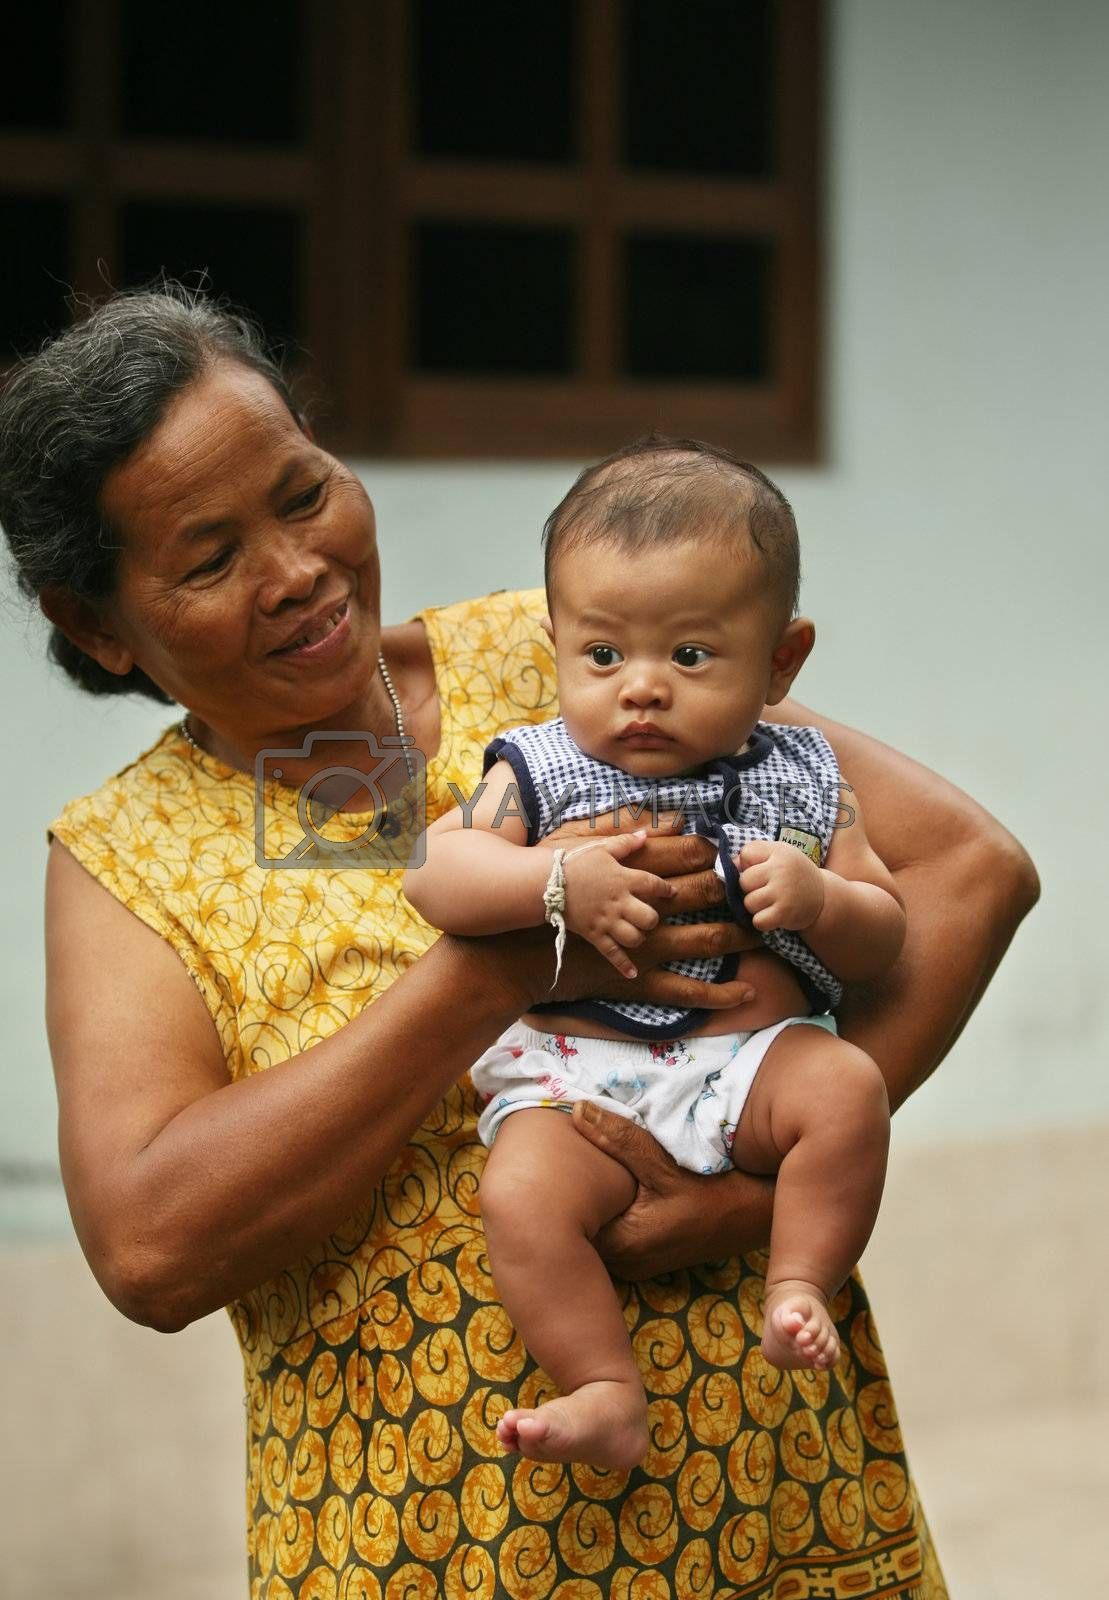 The Indonesian woman with the grandson